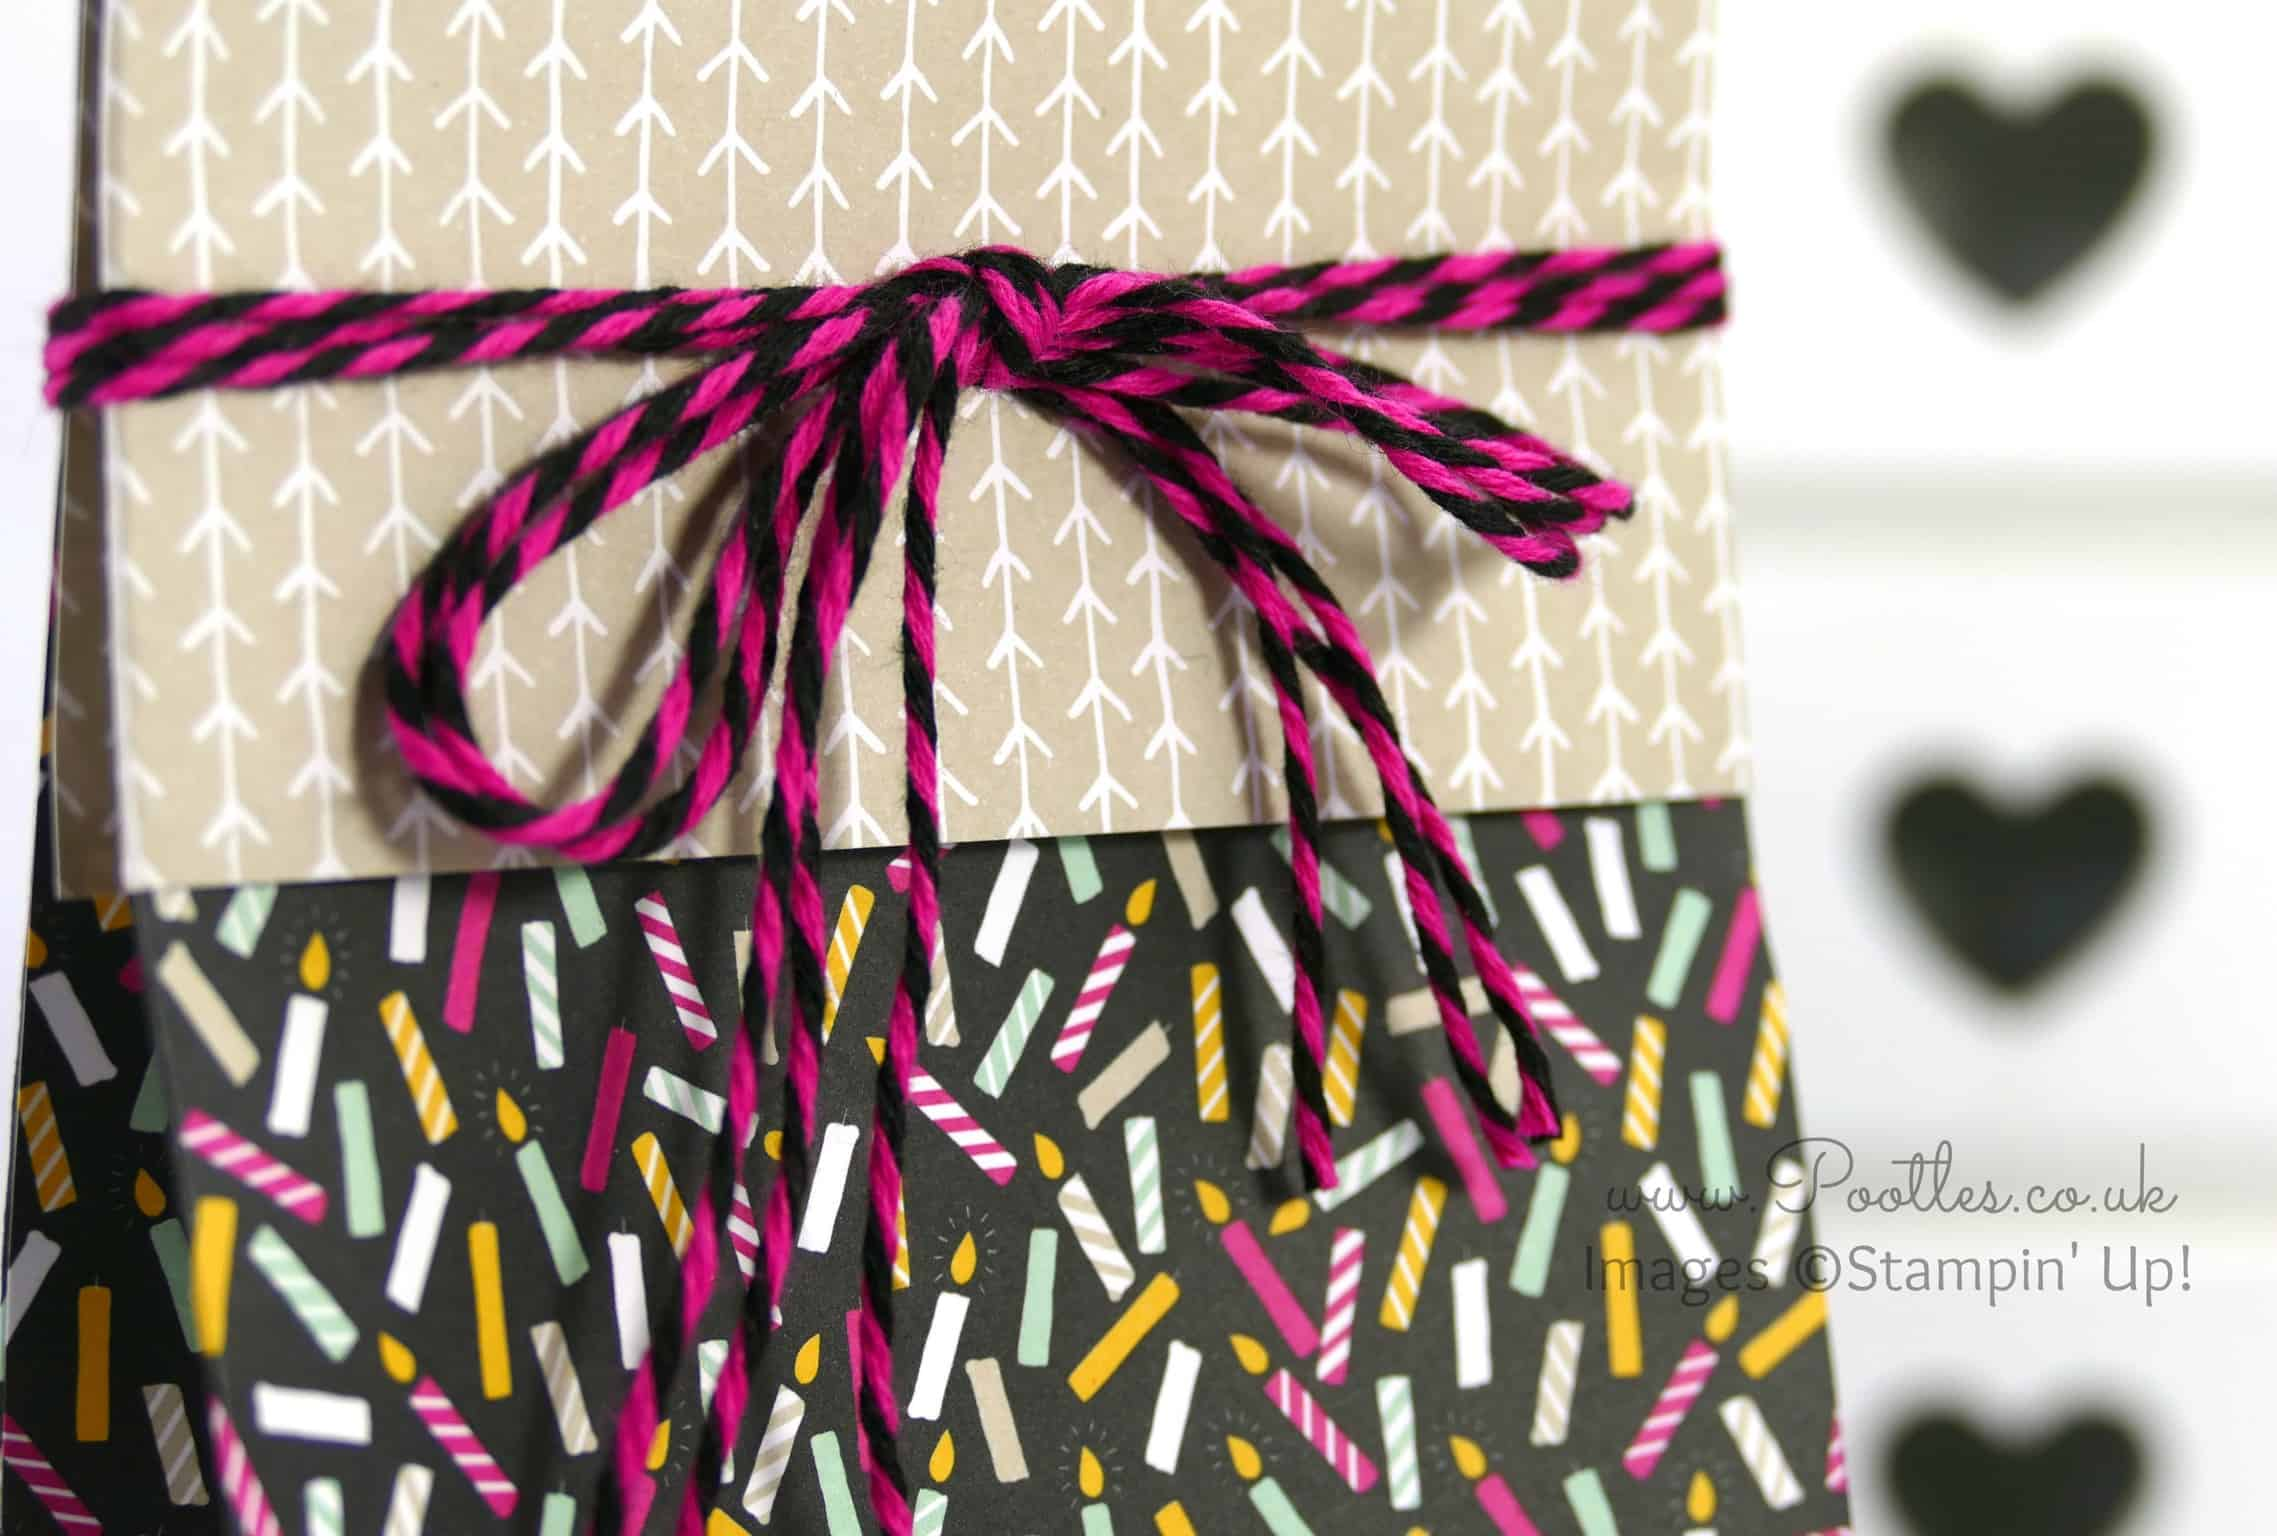 It's My Party Huge Bag using Stampin' Up! DSP